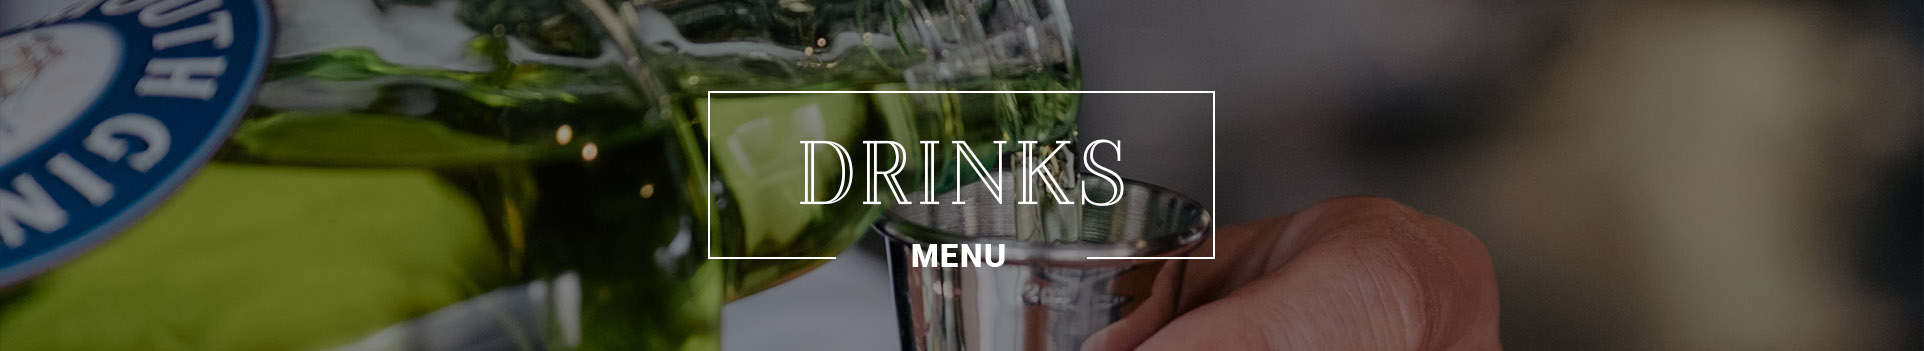 grille-eichardts-drinks-menu-tiles